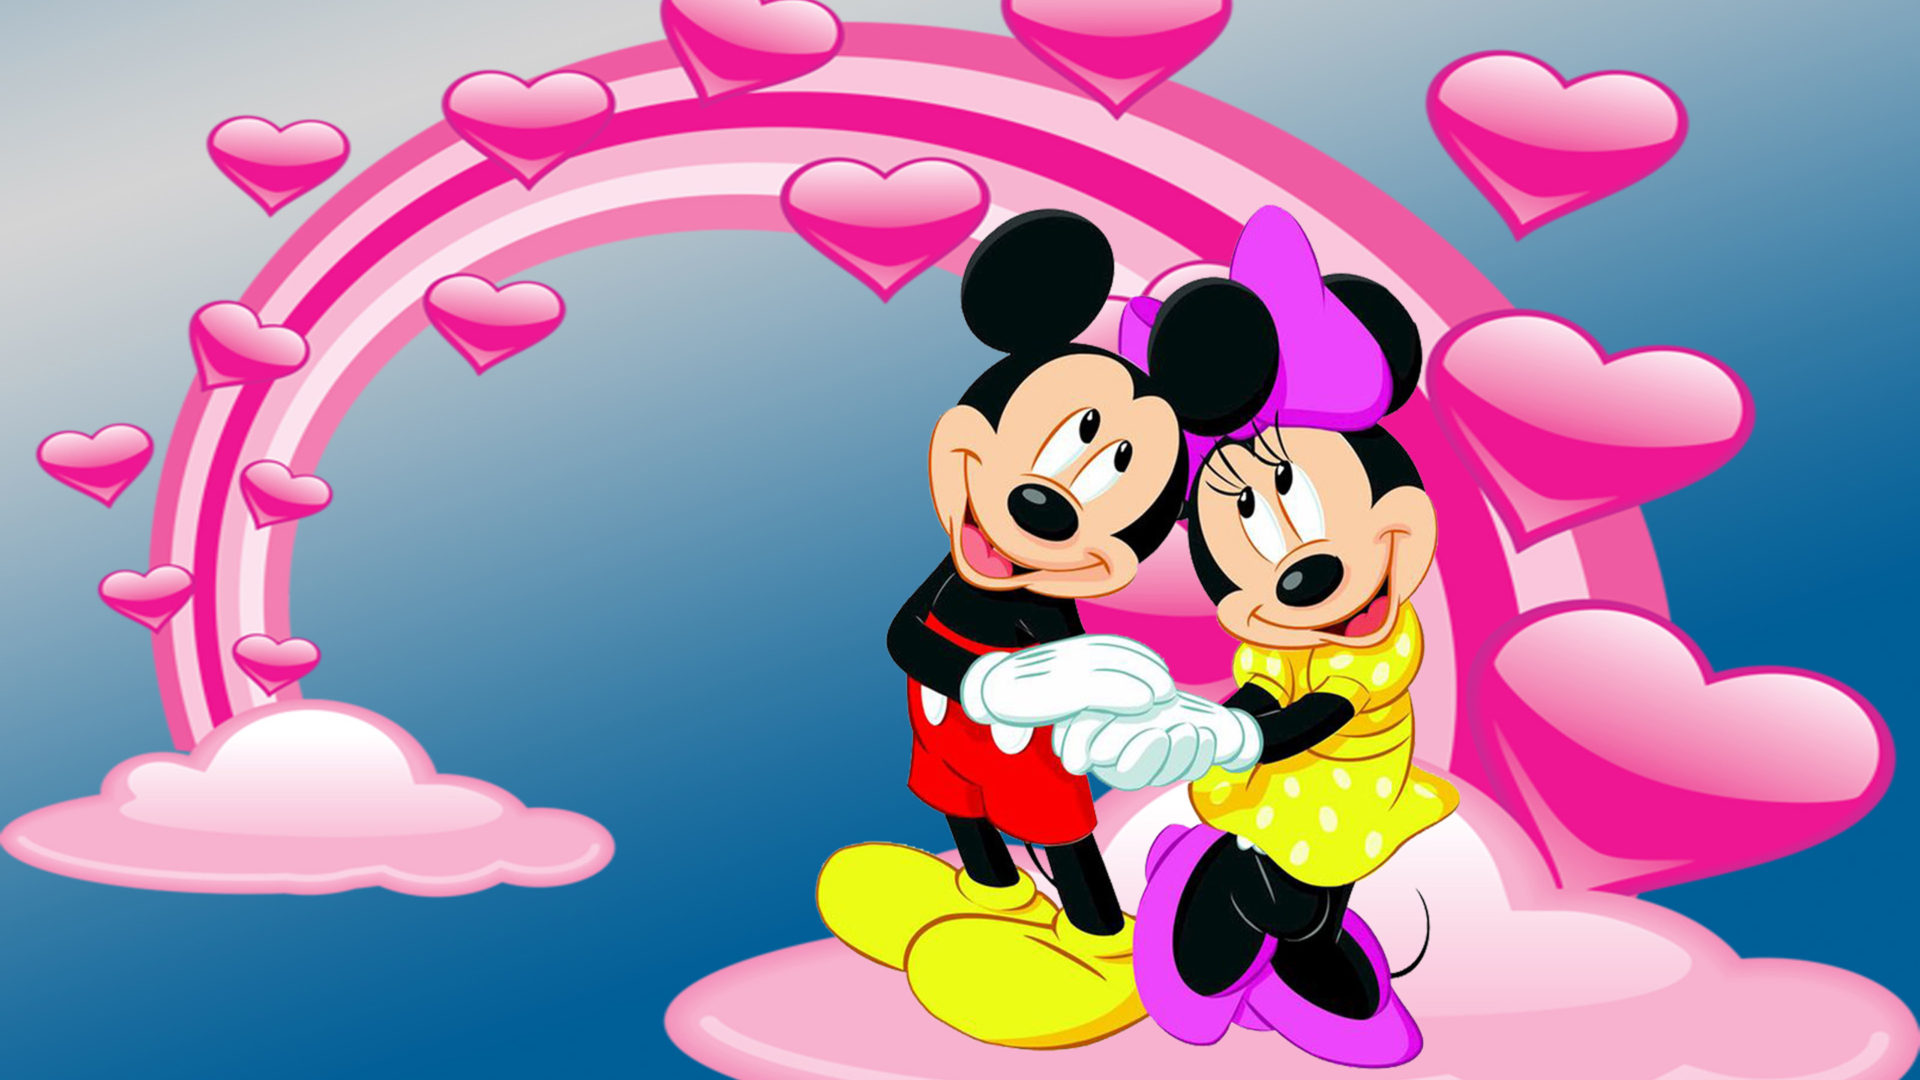 How To Get A Live Wallpaper On Iphone X Mickey And Minnie Mouse Photo By Love Desktop Hd Wallpaper